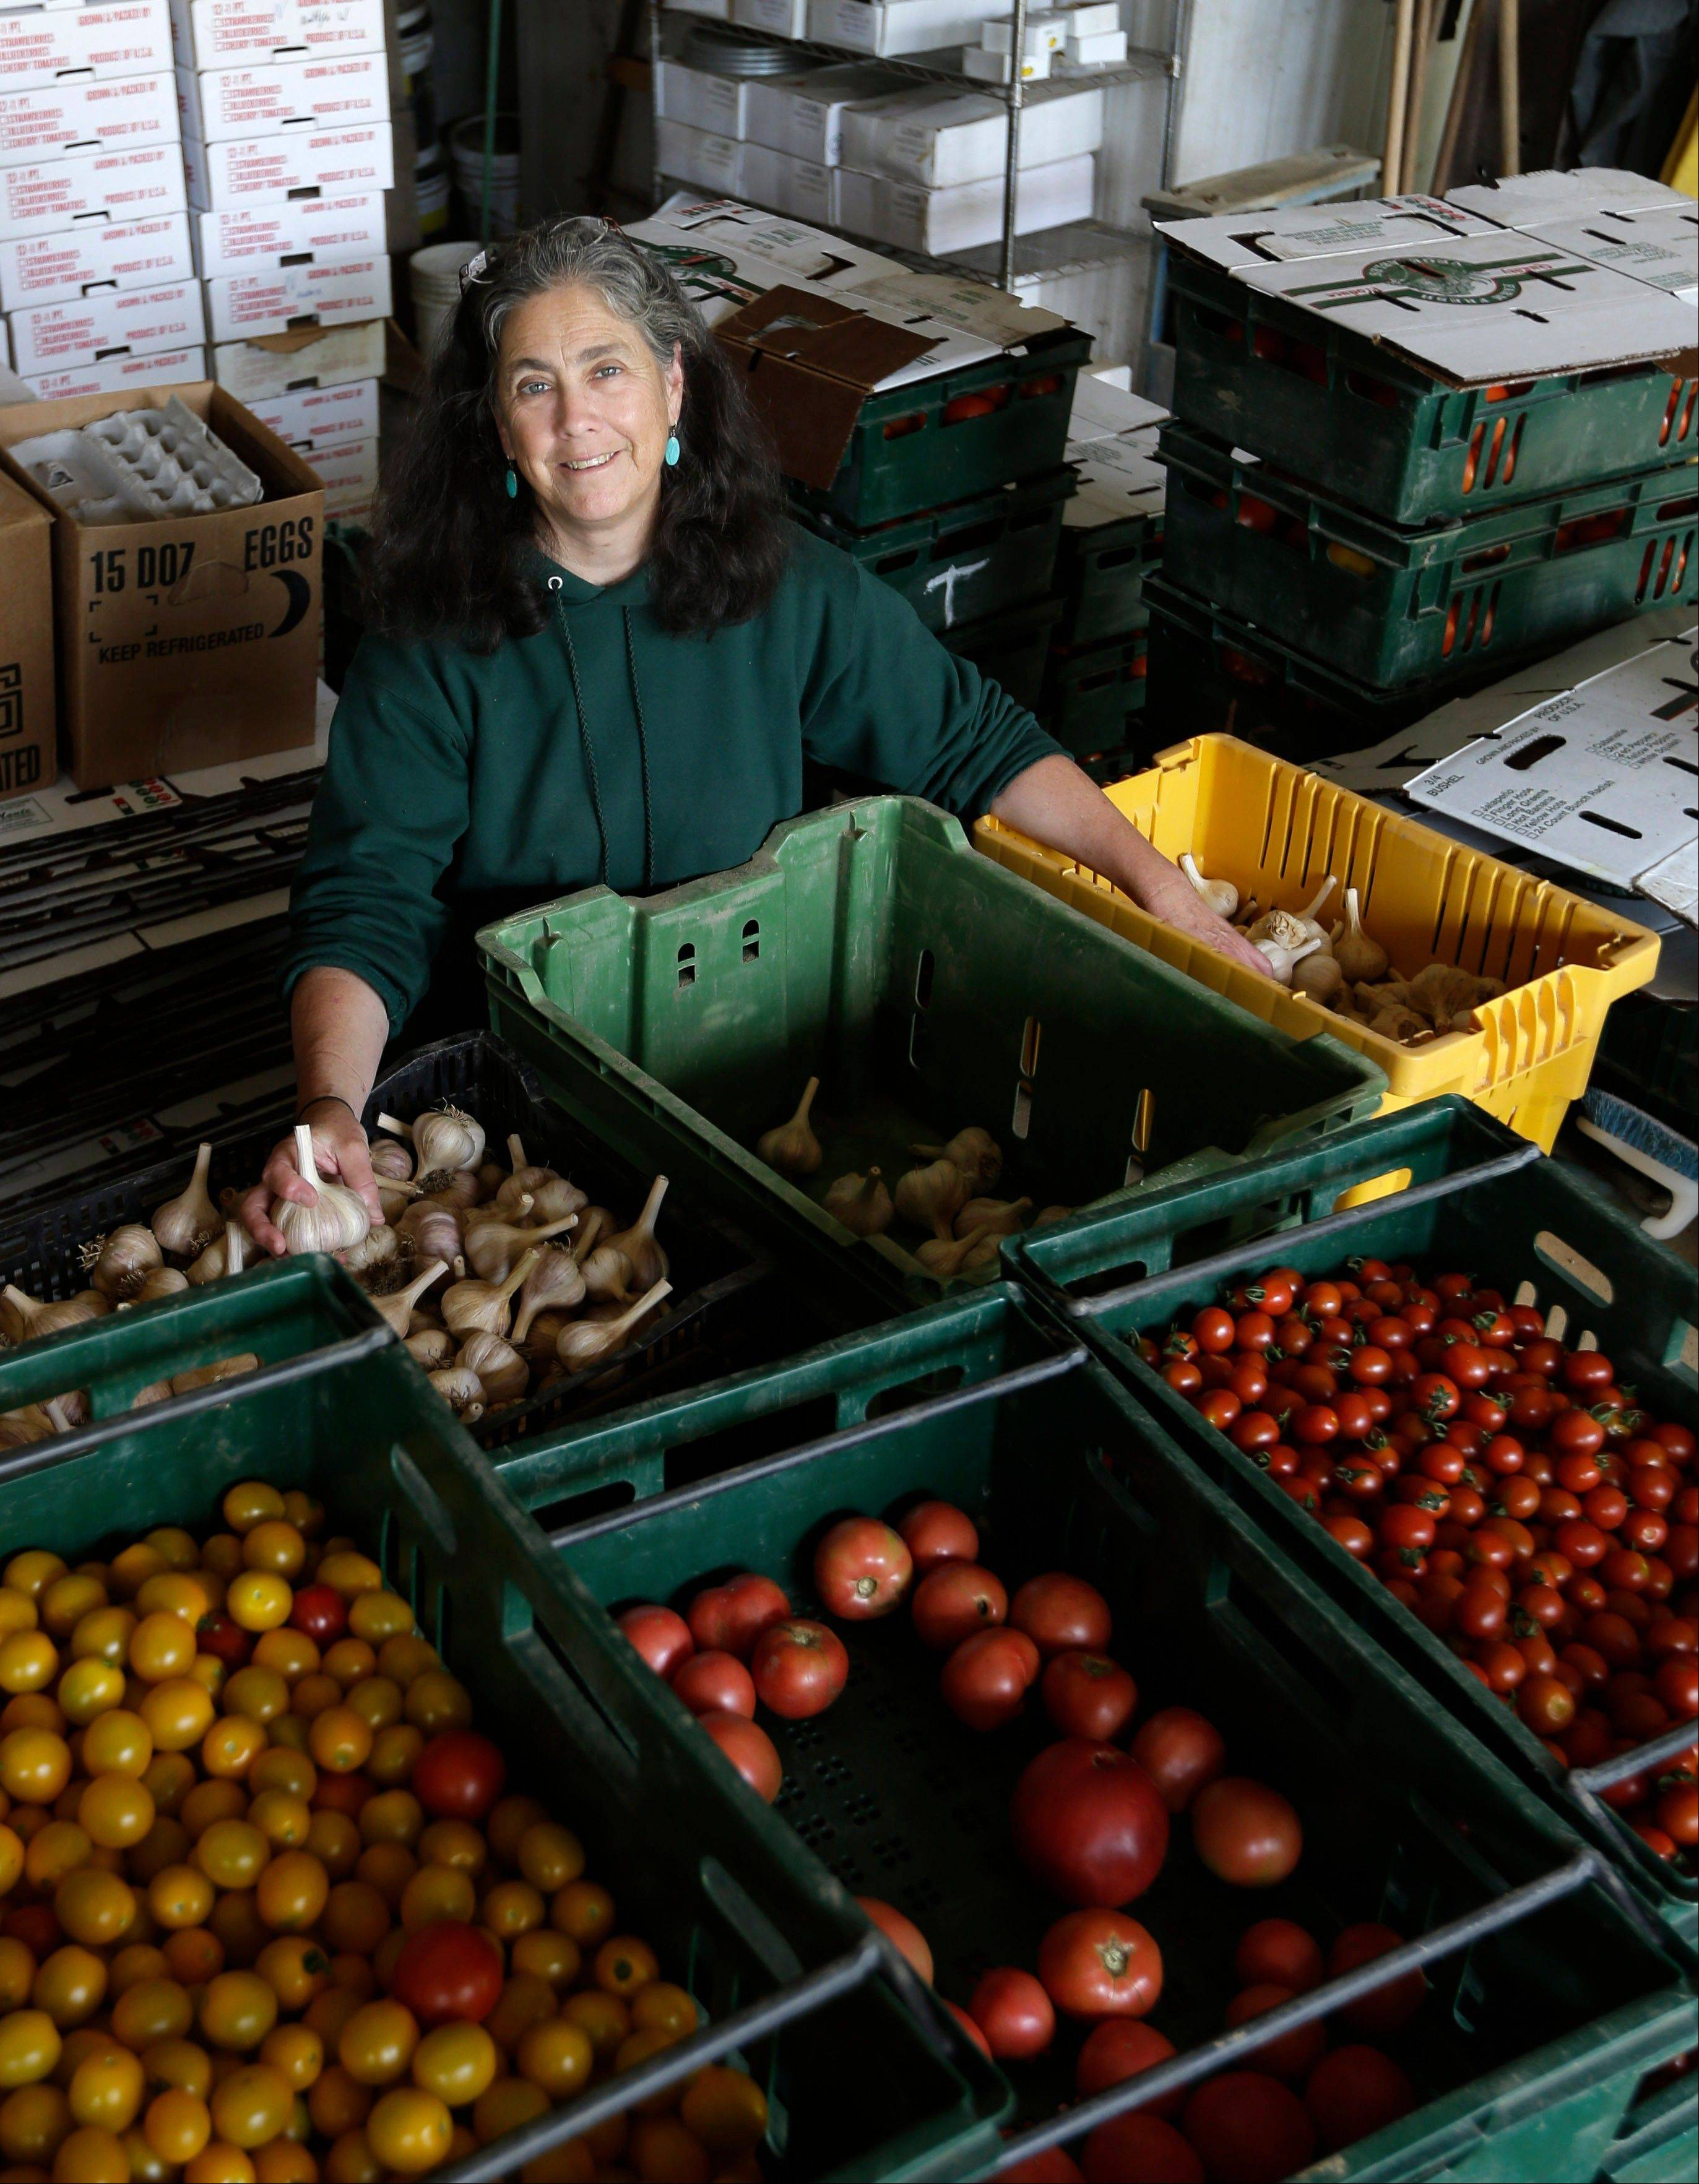 Justine Denison poses with fresh produce at Denison Farm on Aug. 12 in Schaghticoke, N.Y. Justine and Brian Denison adhere to all the growing practices required for organic certification, but if they label their beans and tomatoes �organically grown,� they could face federal charges and $20,000 or more in fines. That�s why they and hundreds of other small direct-marketing farms across the country have adopted an alternative label: Certified Naturally Grown. Certified farms pledge to follow organic practices, while avoiding the high fee and extensive paperwork required for the federal organic label.